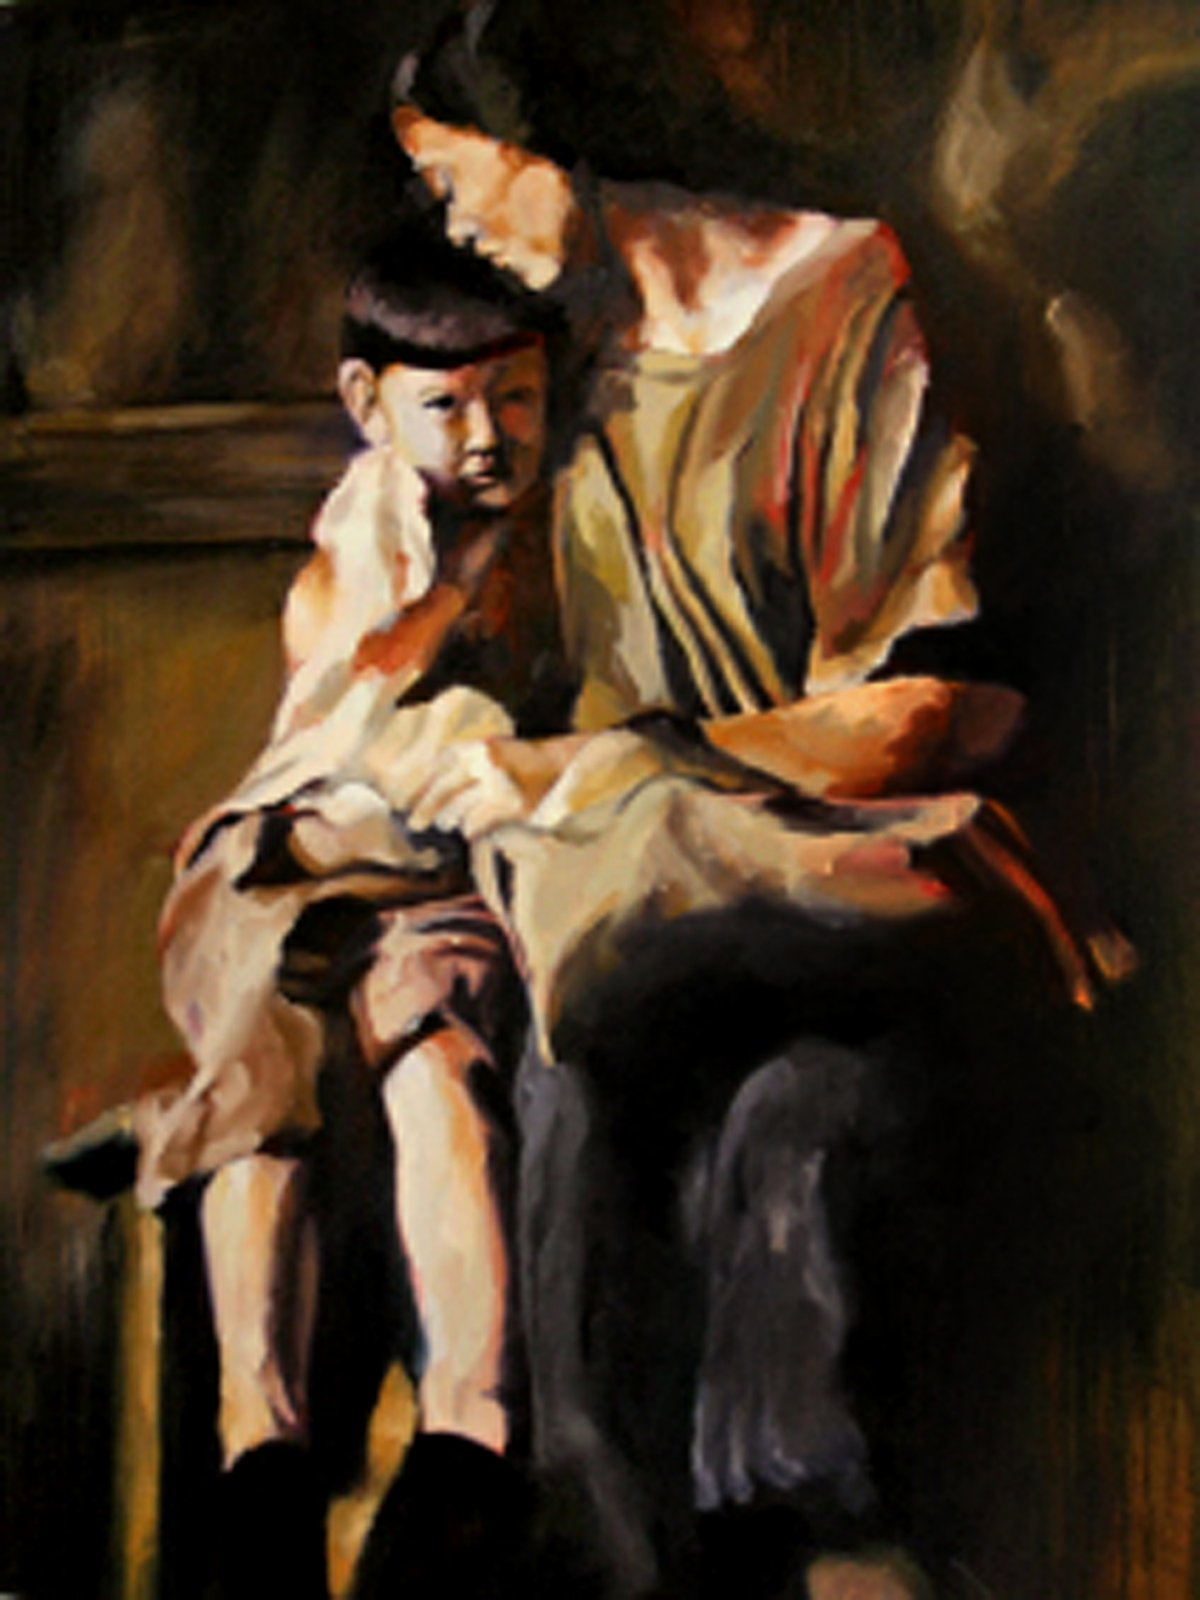 """Remember  , 2003, Oil on canvas, 48 x 30"""" Collection of Mr. Paul Nakada and Mrs. Christine Hoang, San Francisco, CA  With a bag in hand, a mother holds her son before sending him off to the new land.  My grandparents were wealthy people,property owners in North Vietnam. When the Viet Cong invaded, my grandparents migrated south to Saigon with their family, where they and their children would be apart from communist rule. Here they found their salvation for a time, until the the Viet Cong moved further south, resulting to their escape. They left behind all material possession, their homeland,and the life they once knew, in order to seek freedom elsewhere, anywhere but here. This painting is dedicated to those who have sacrificed much in order to allow their loved ones a greater opportunity."""